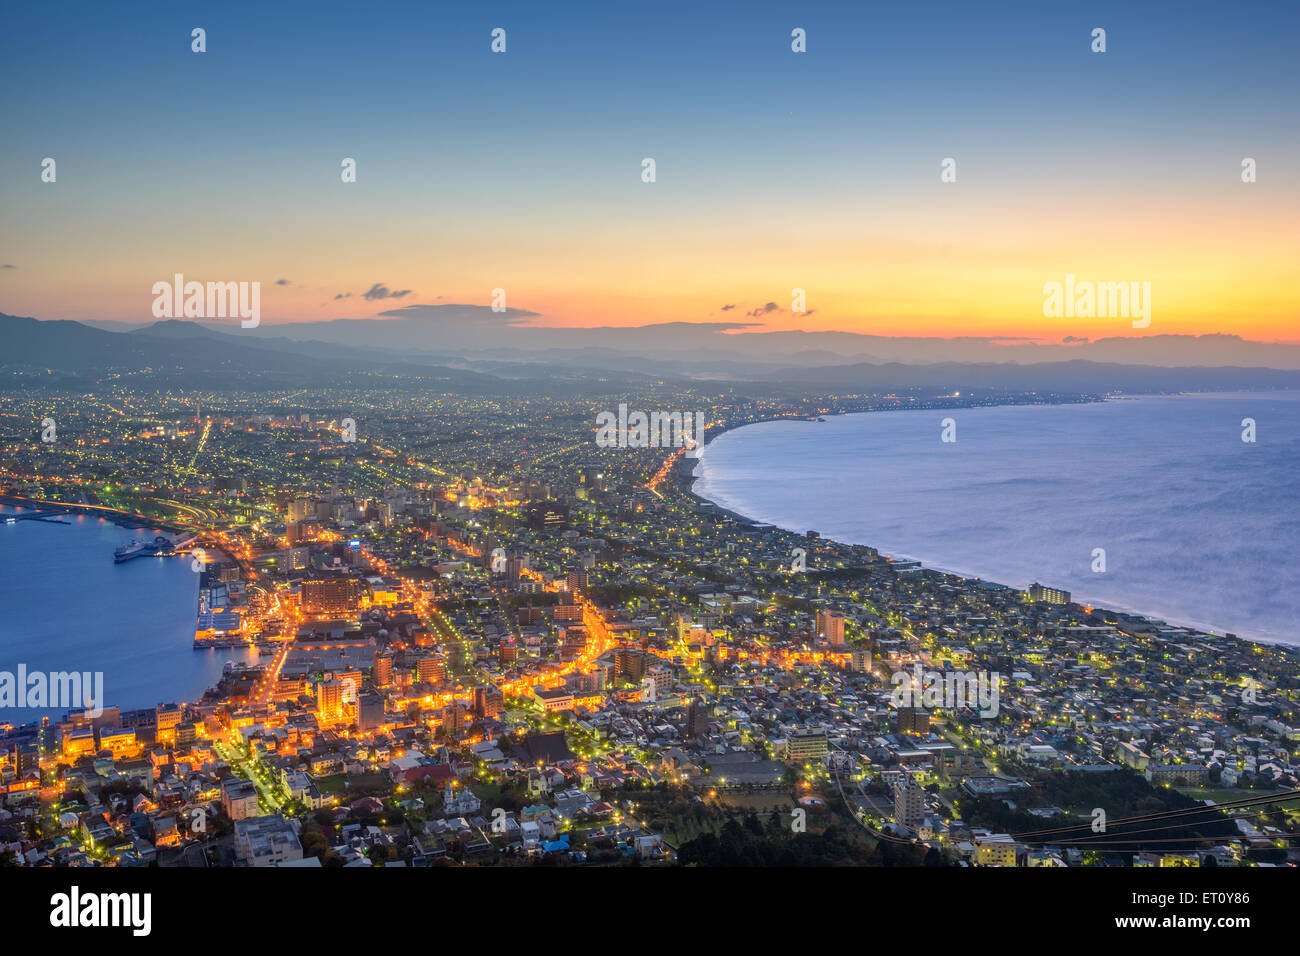 Hakodate, Hokkaido, Japan city skyline from Mt. Hakodate at dawn. - Stock Image